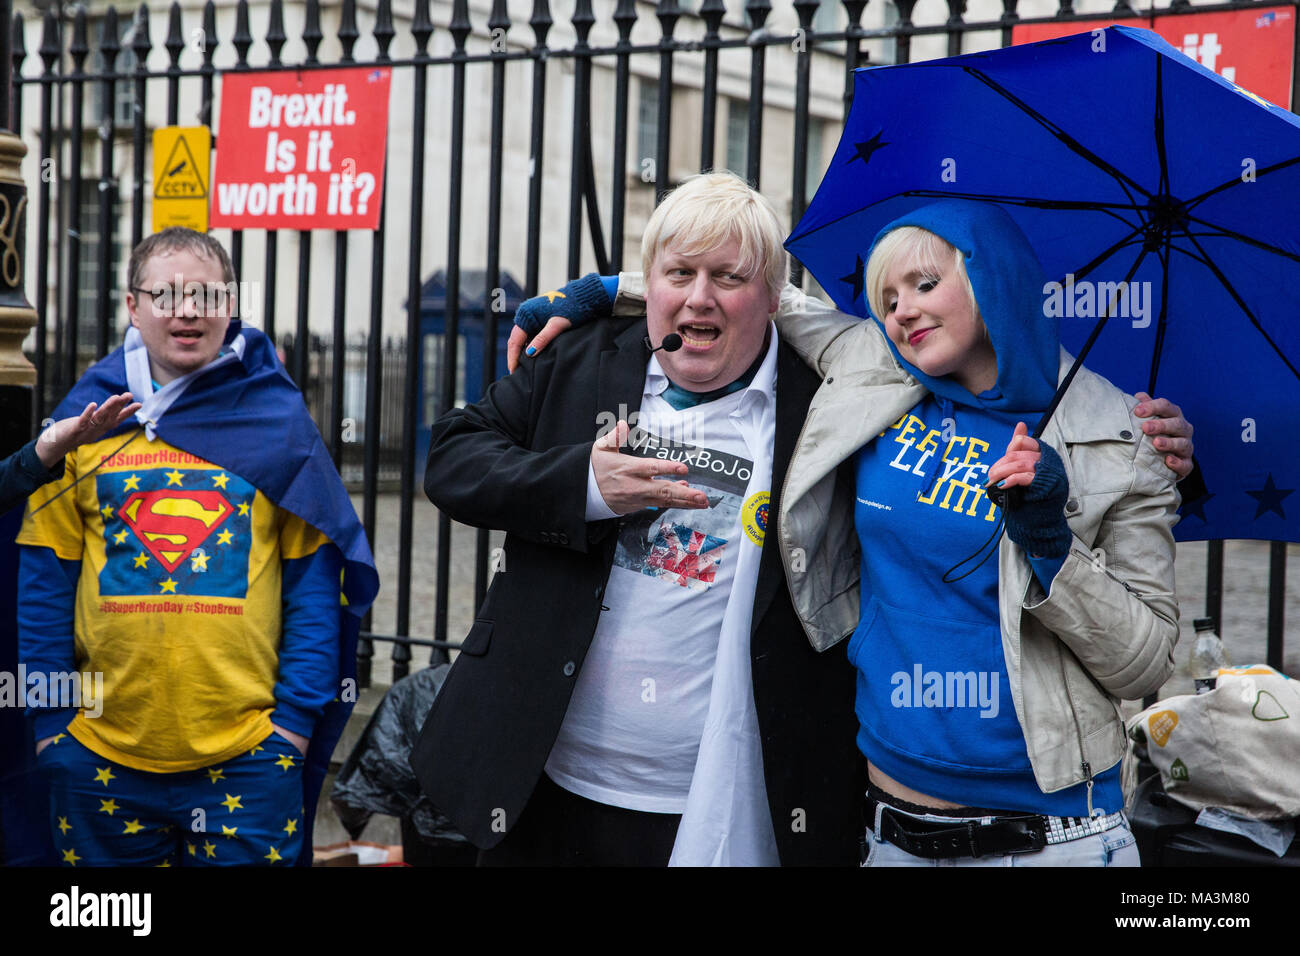 London, UK. 29th March, 2018. Pro-EU activists including Boris Johnson lookalike Drew Galdron and EU Supergirl and Young European of the Year 2018 Madeleina Kay protest opposite Downing Street to mark the first anniversary of the triggering of Article 50 and a year before the UK's exit from the European Union, or Brexit, is scheduled to take place. Protesters dressed as 'EU super heroes' and 'Brexit villains'. Credit: Mark Kerrison/Alamy Live News - Stock Image